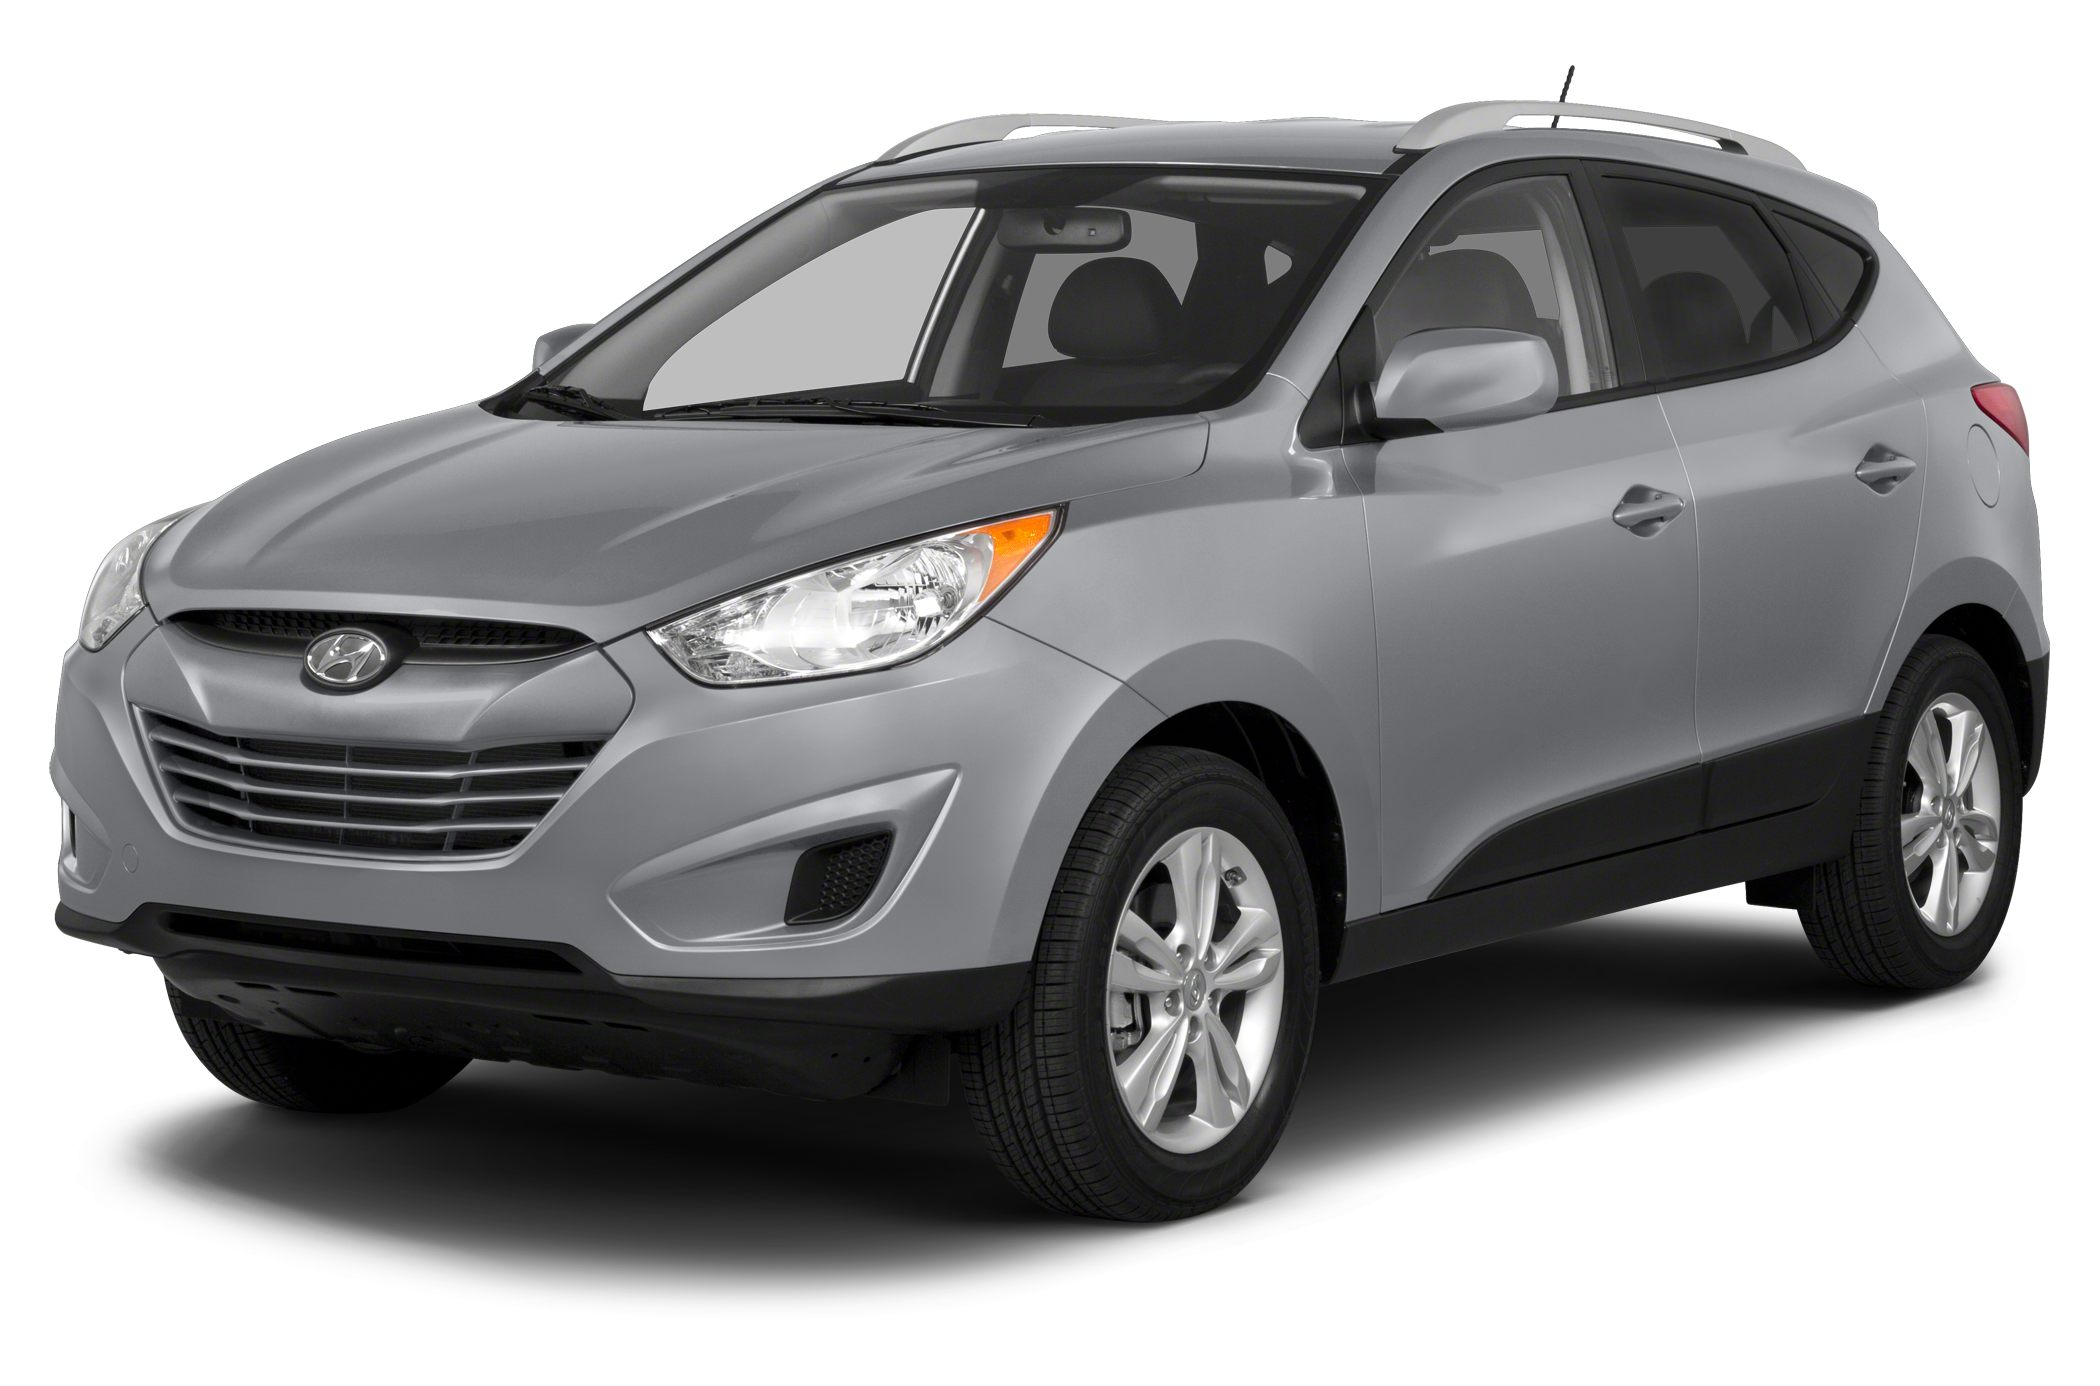 2013 Hyundai Tucson GLS 2013 Hyundai Tucson GLS in Iris Blue Bluetooth for Phone and Audio Stream